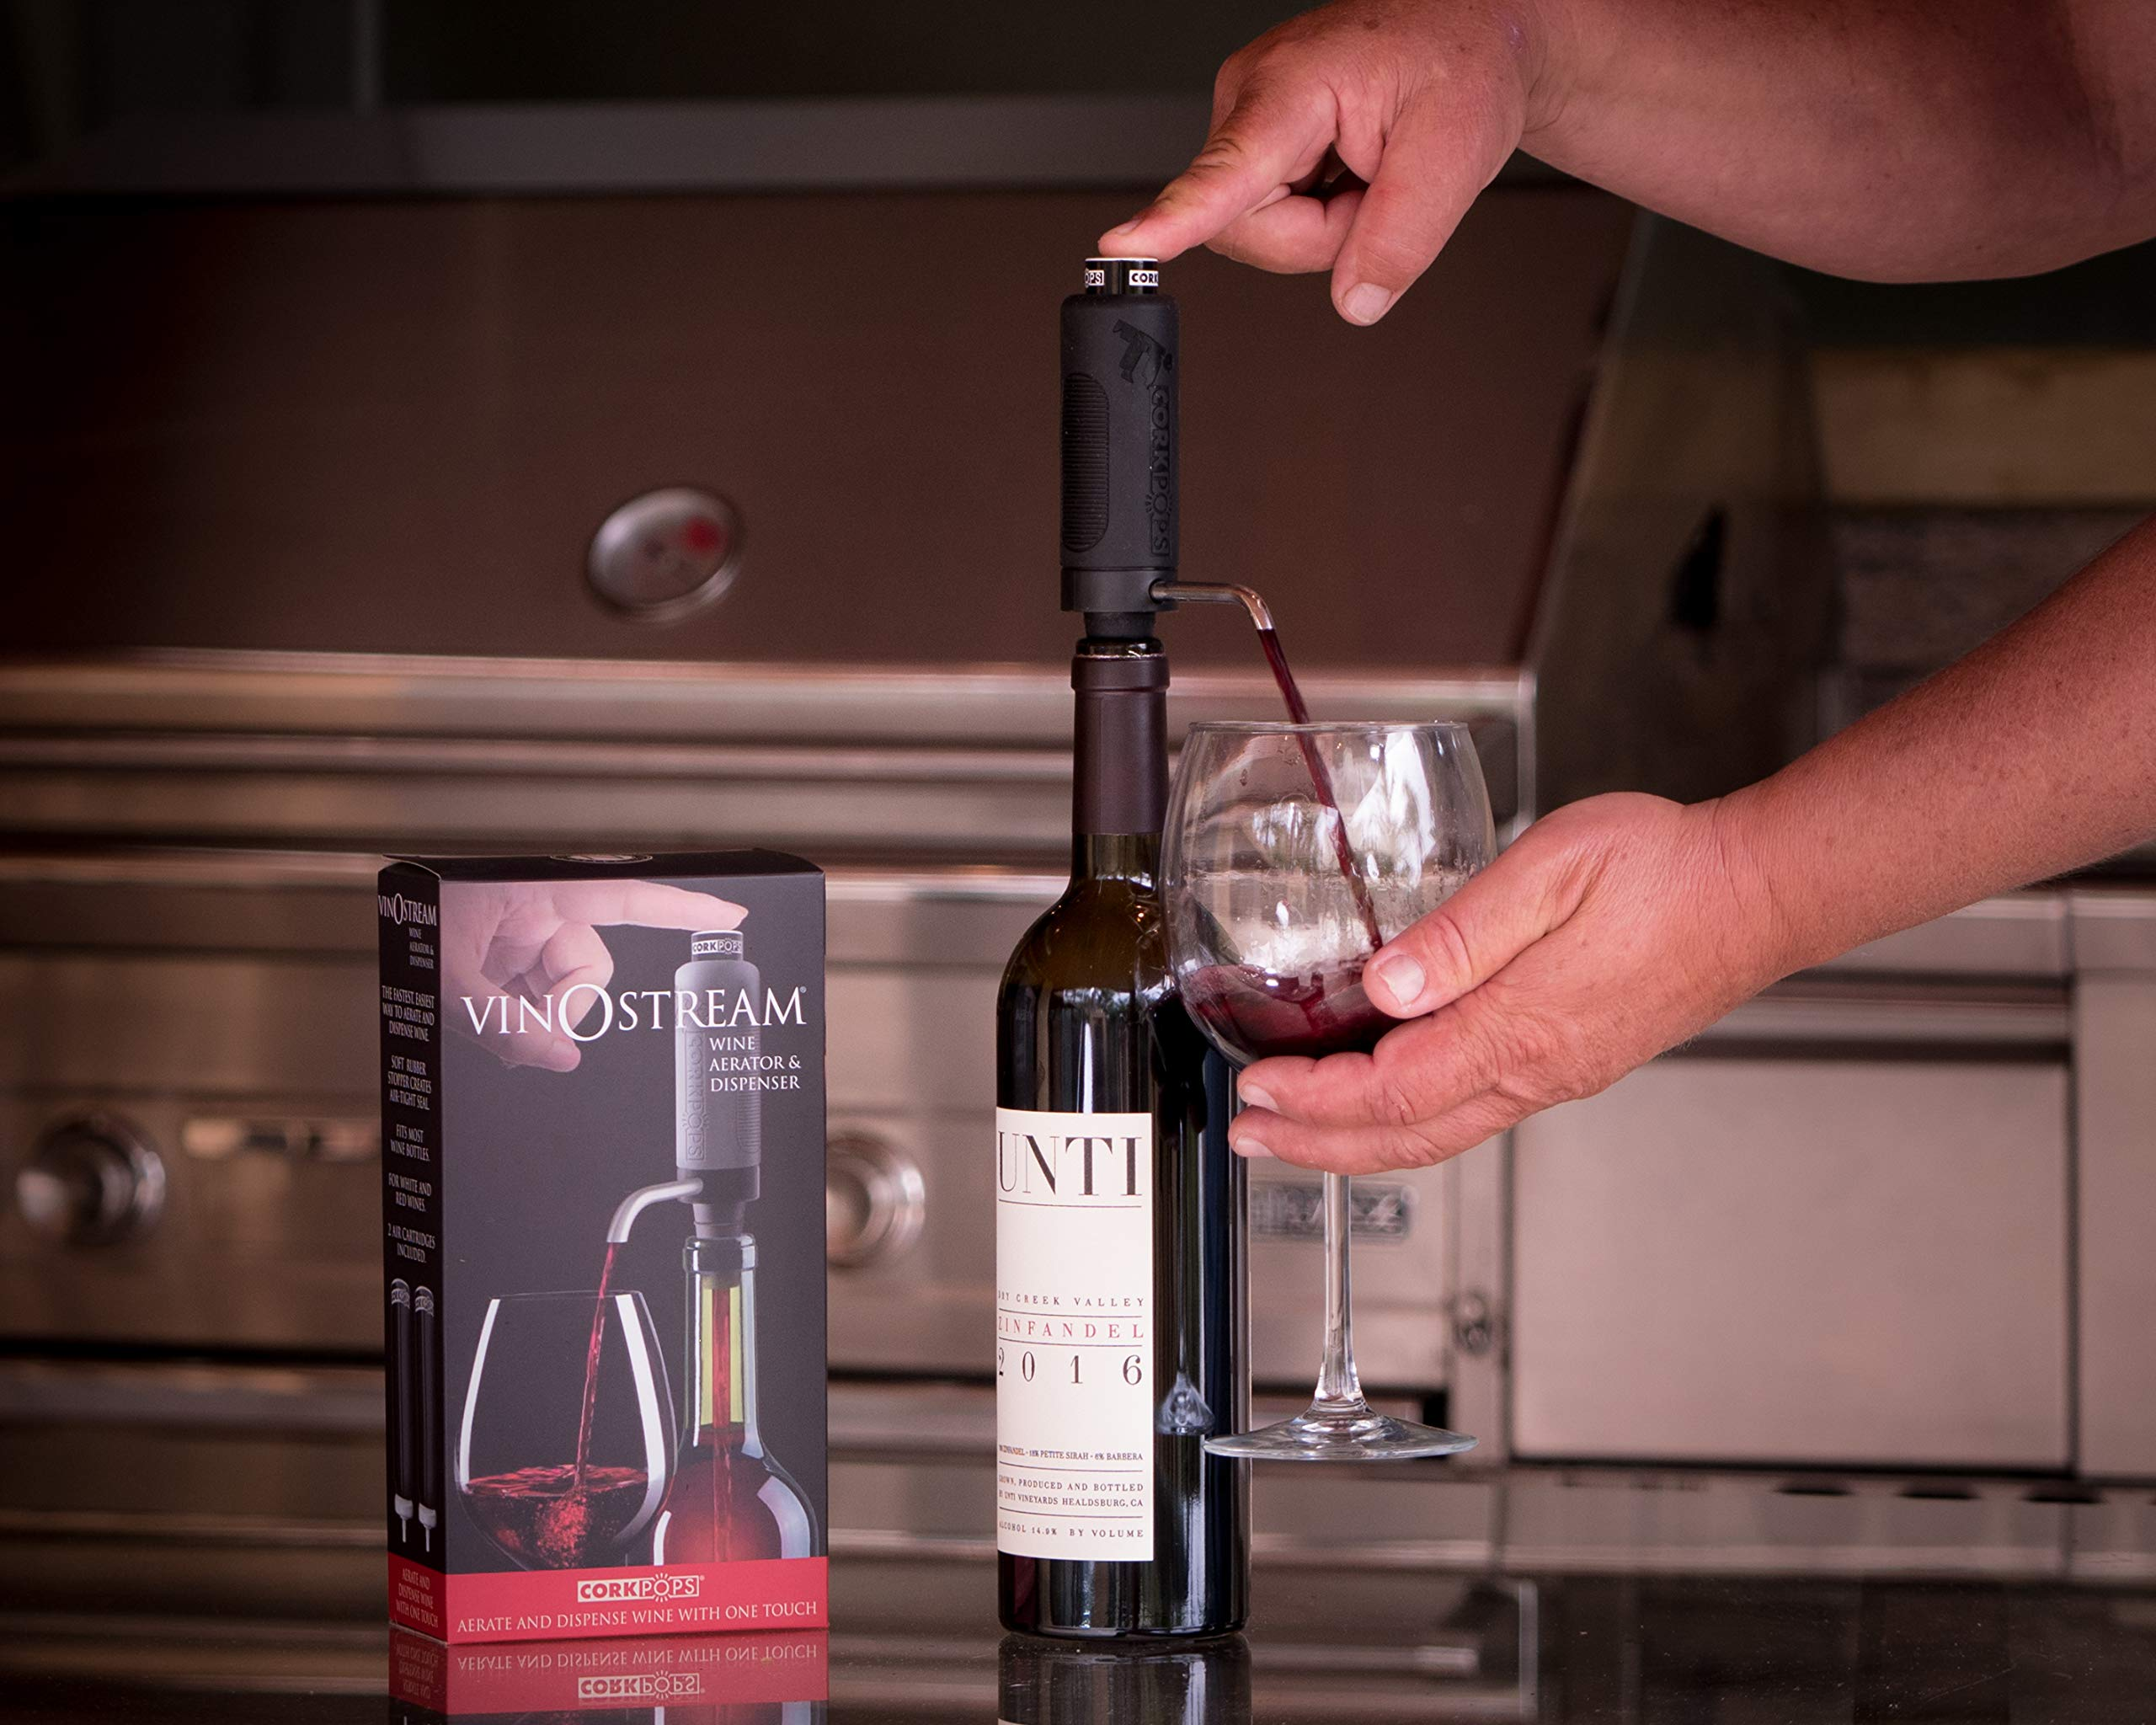 Cork Pops 9'' 2-in-1 Vinostream Wine Aerator & Dispenser by Cork Pops